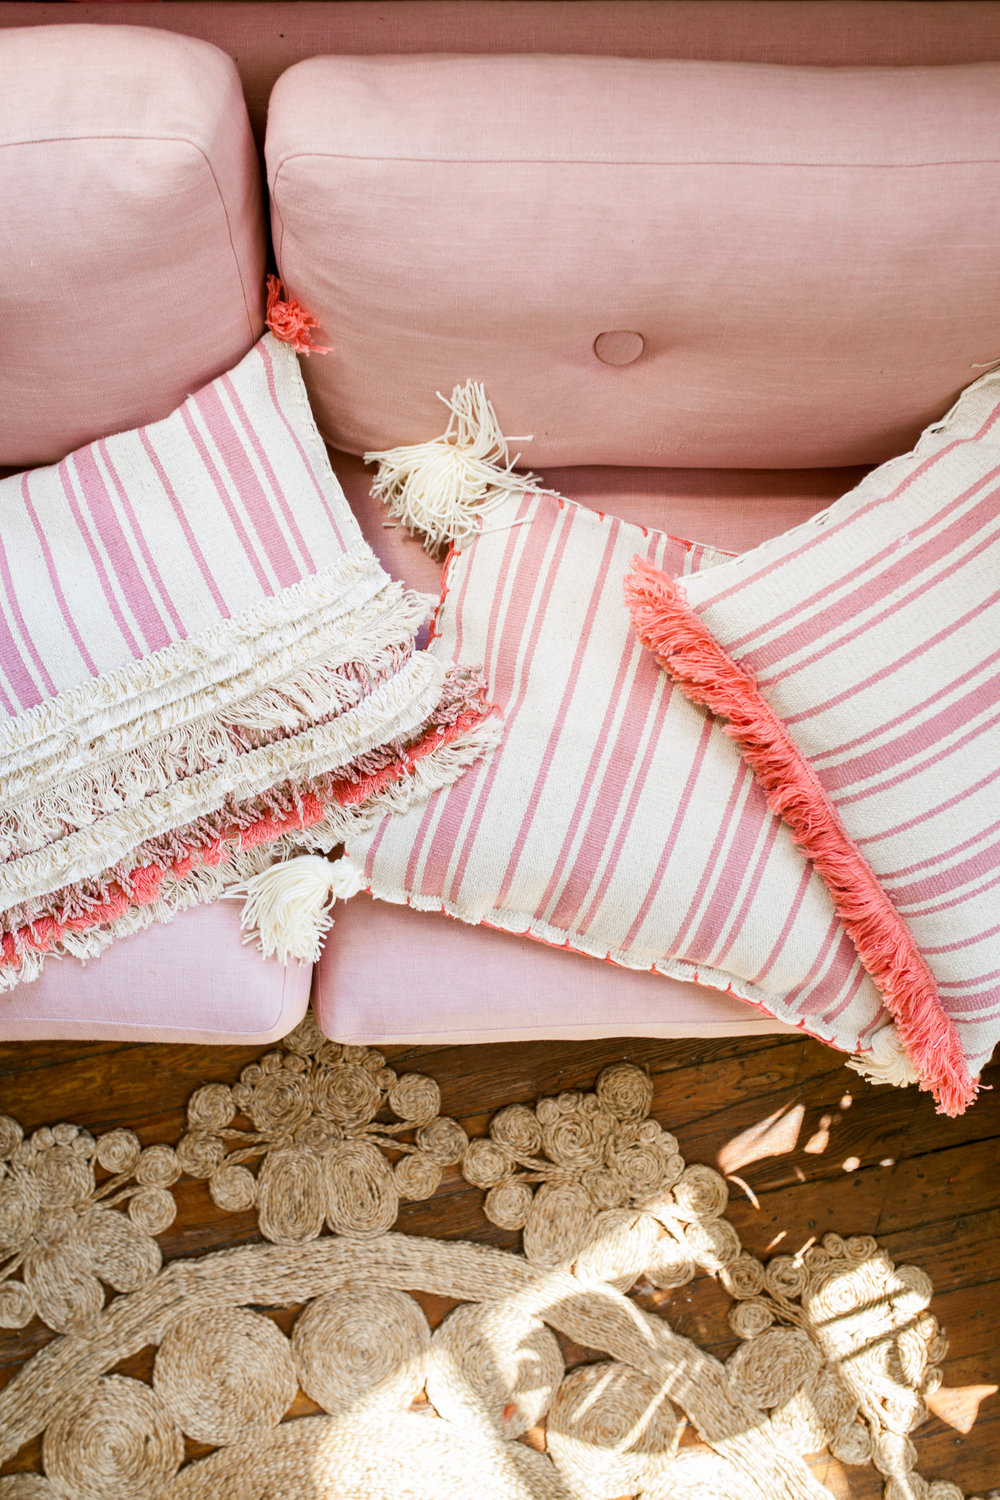 Ikea Hack 3 Diy Pillows With Outdoor Rug Treasures Travels